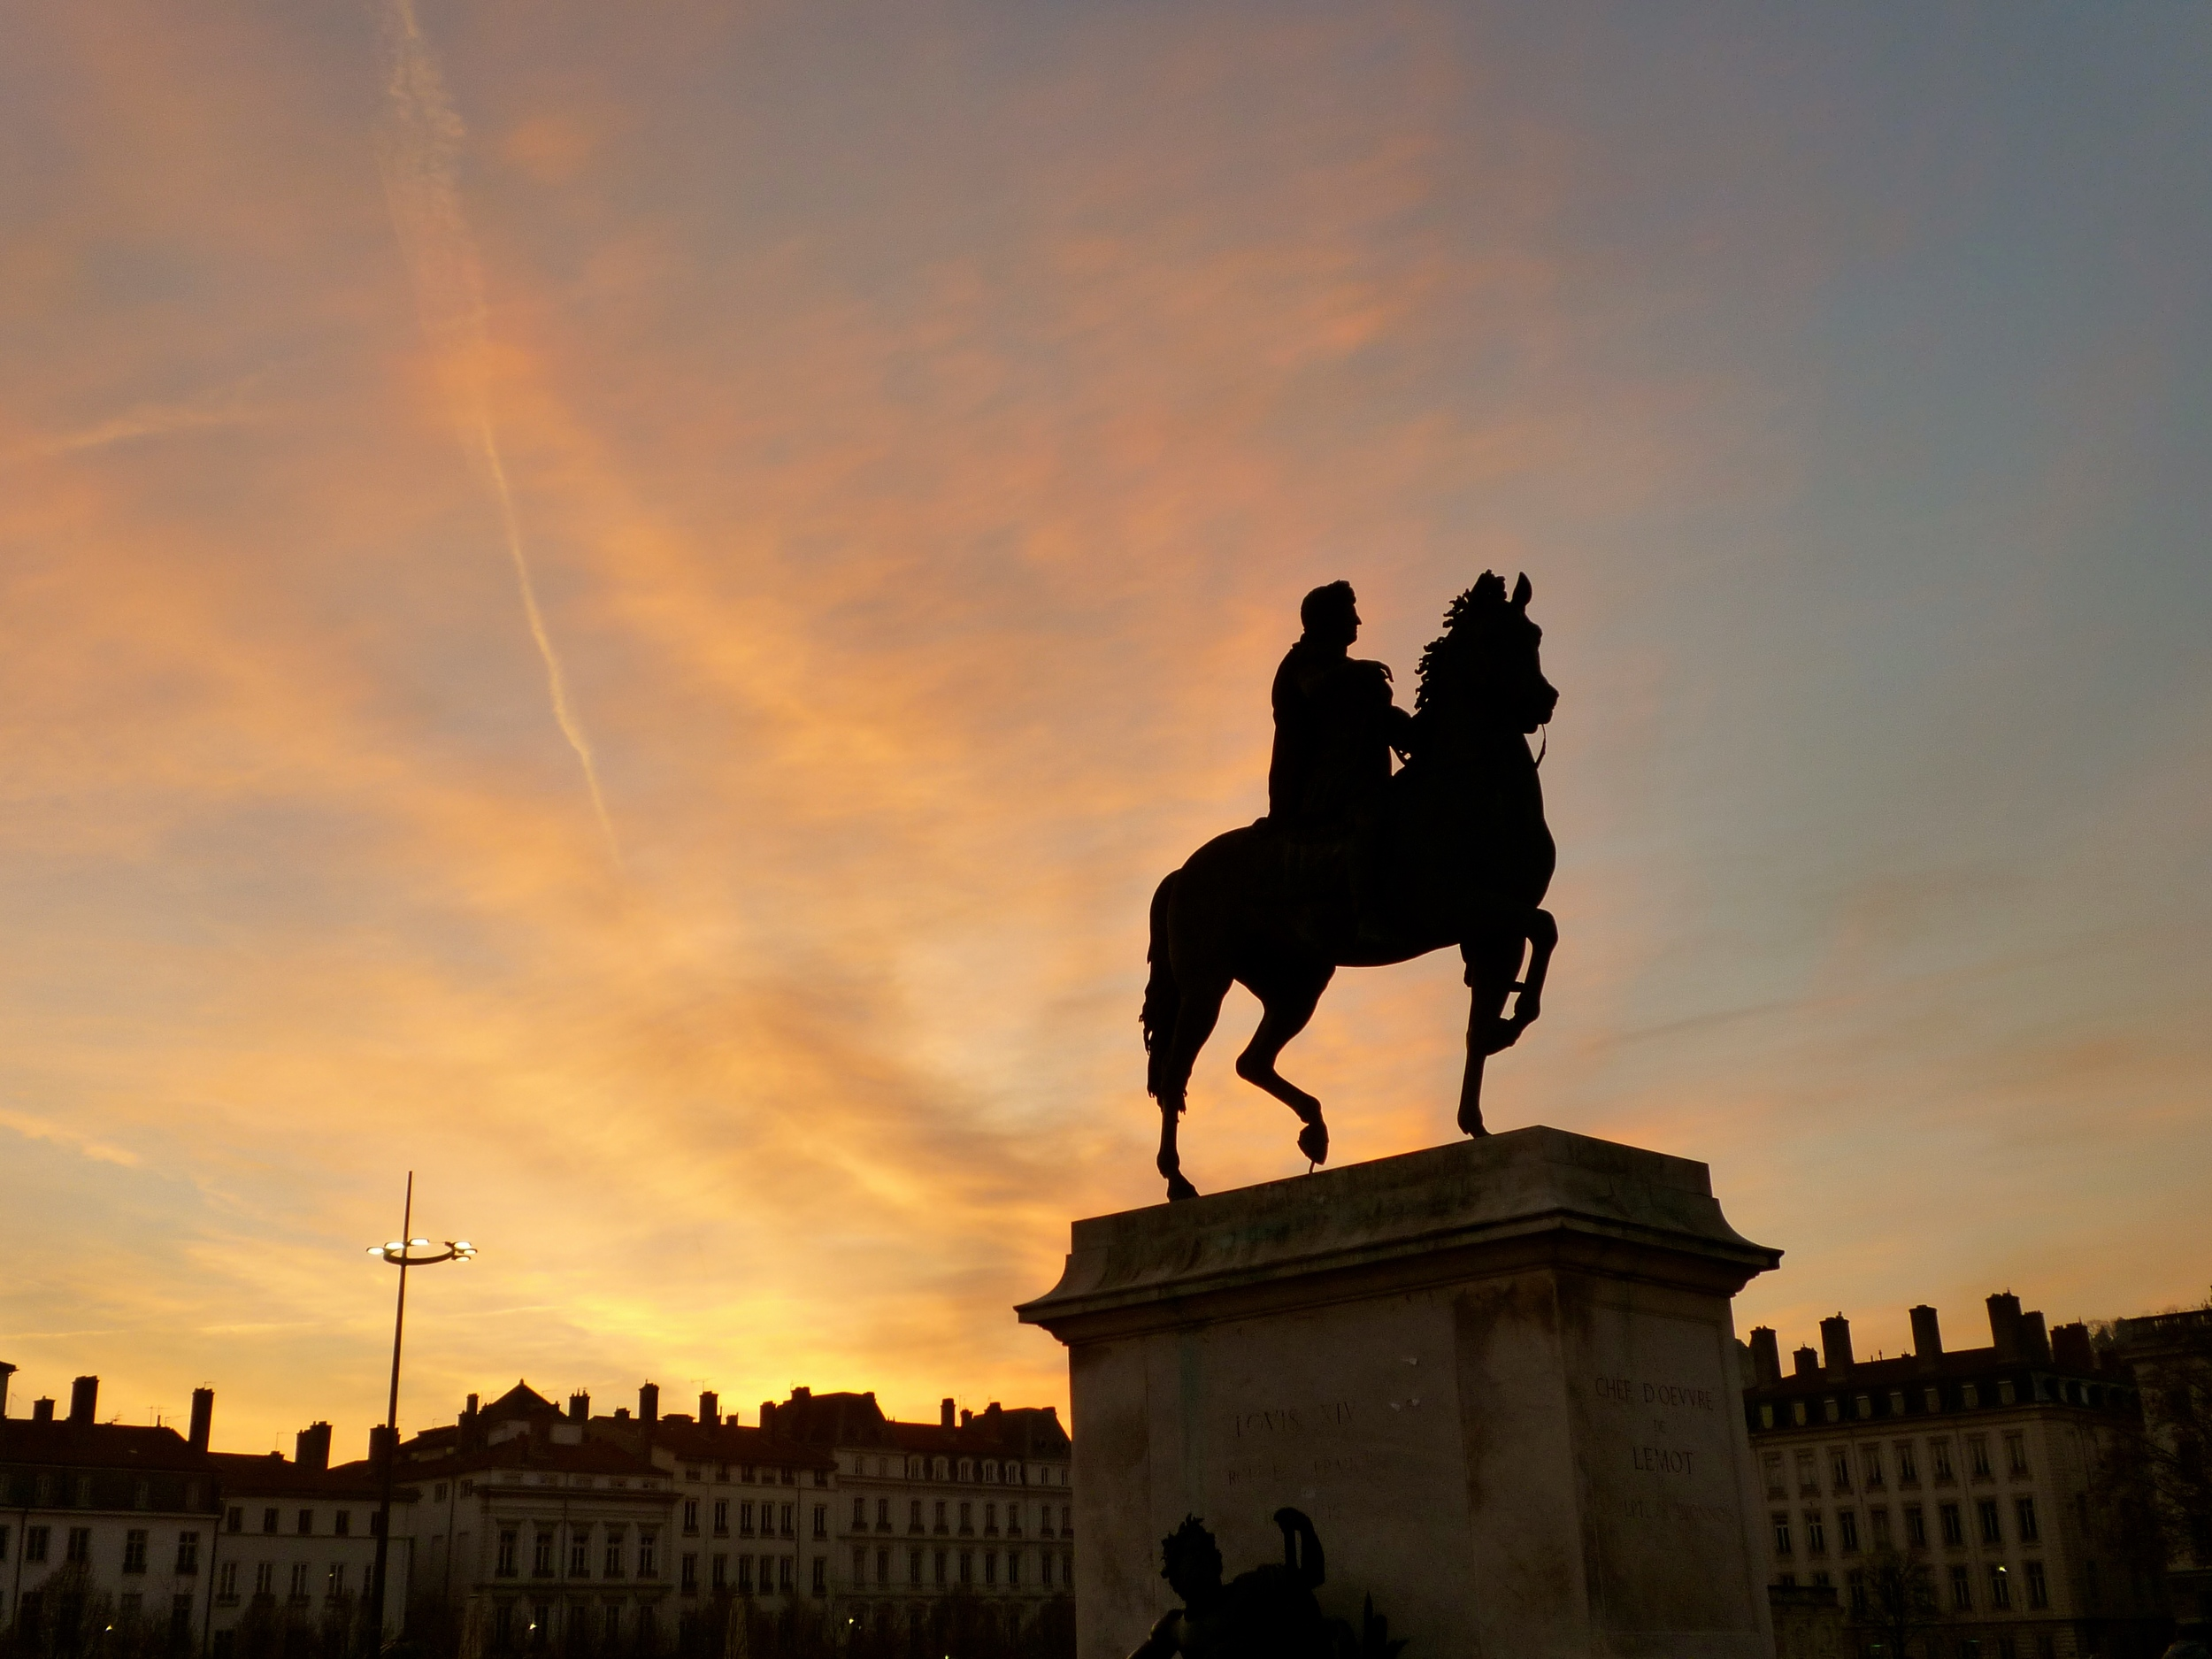 Statue of Louis XIV in the center of Place Bellecour